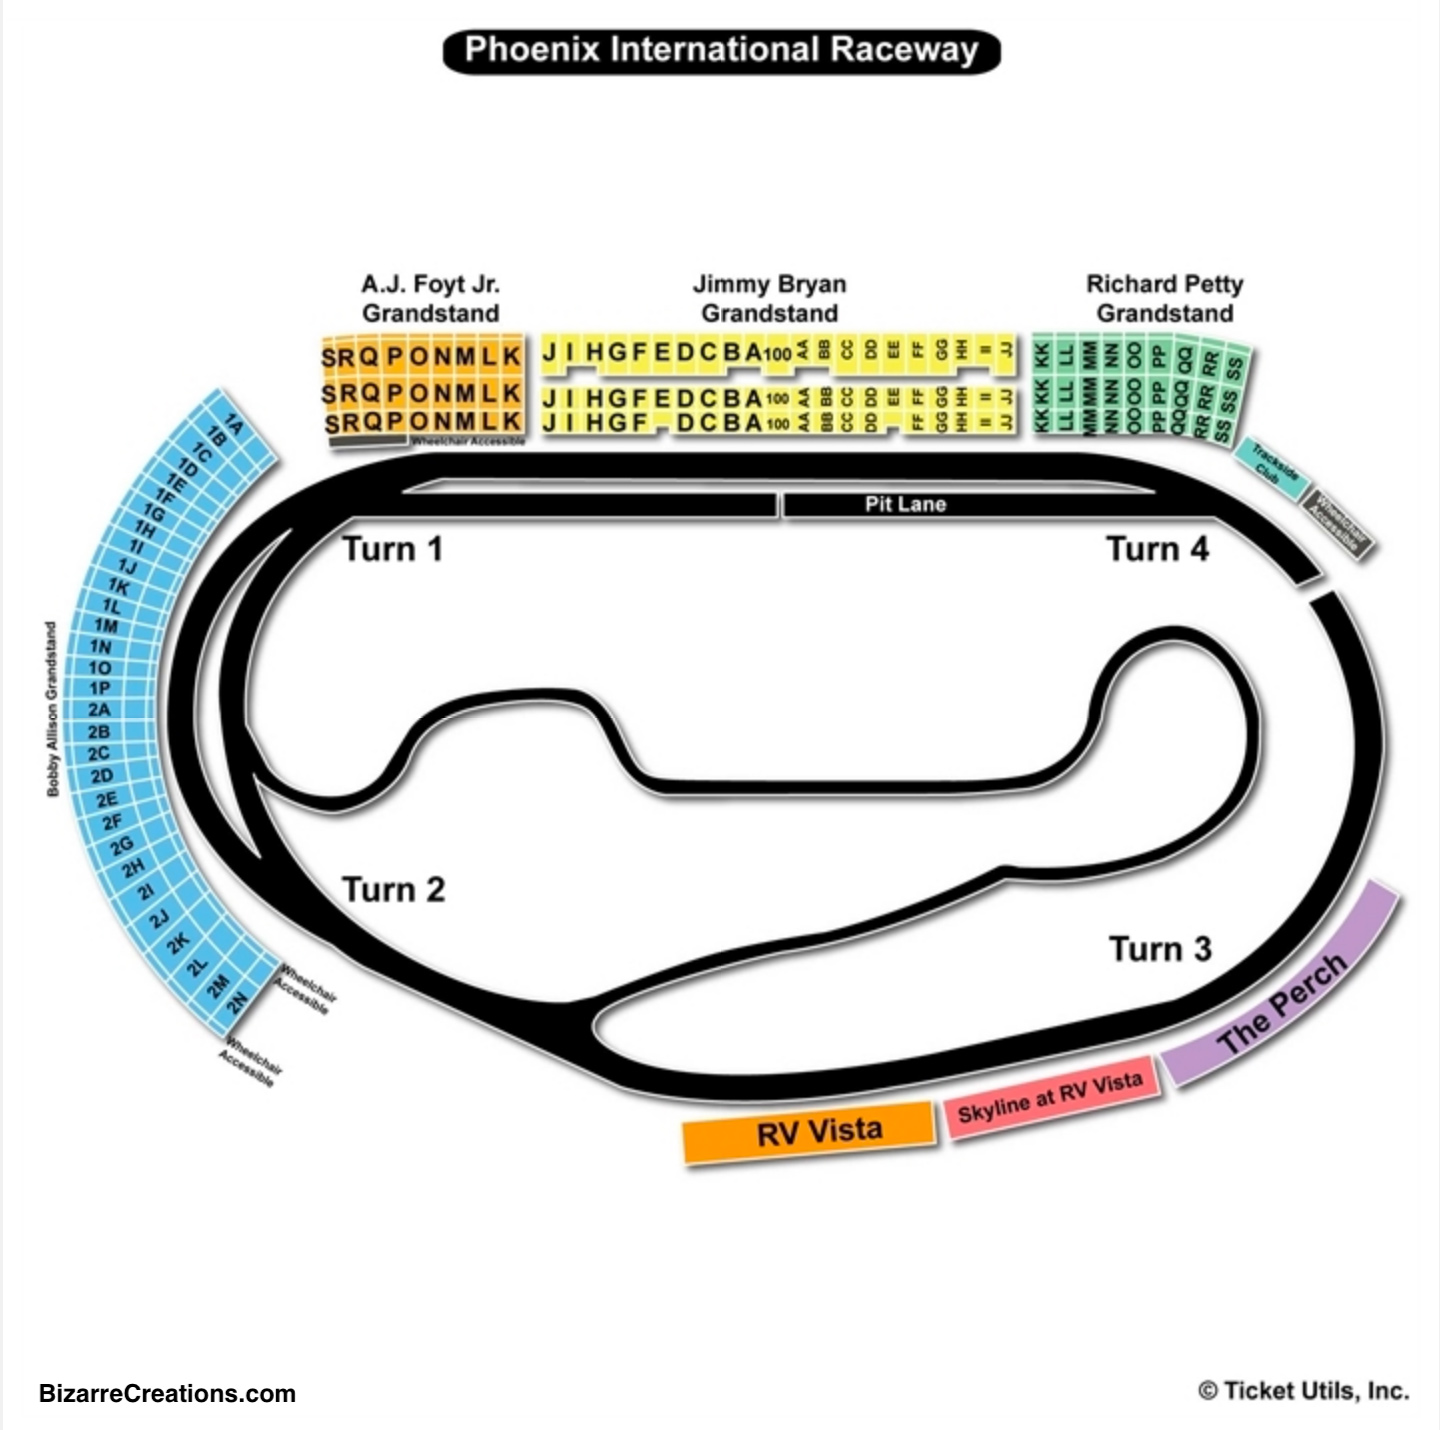 Phoenix international raceway seating chart seating charts tickets